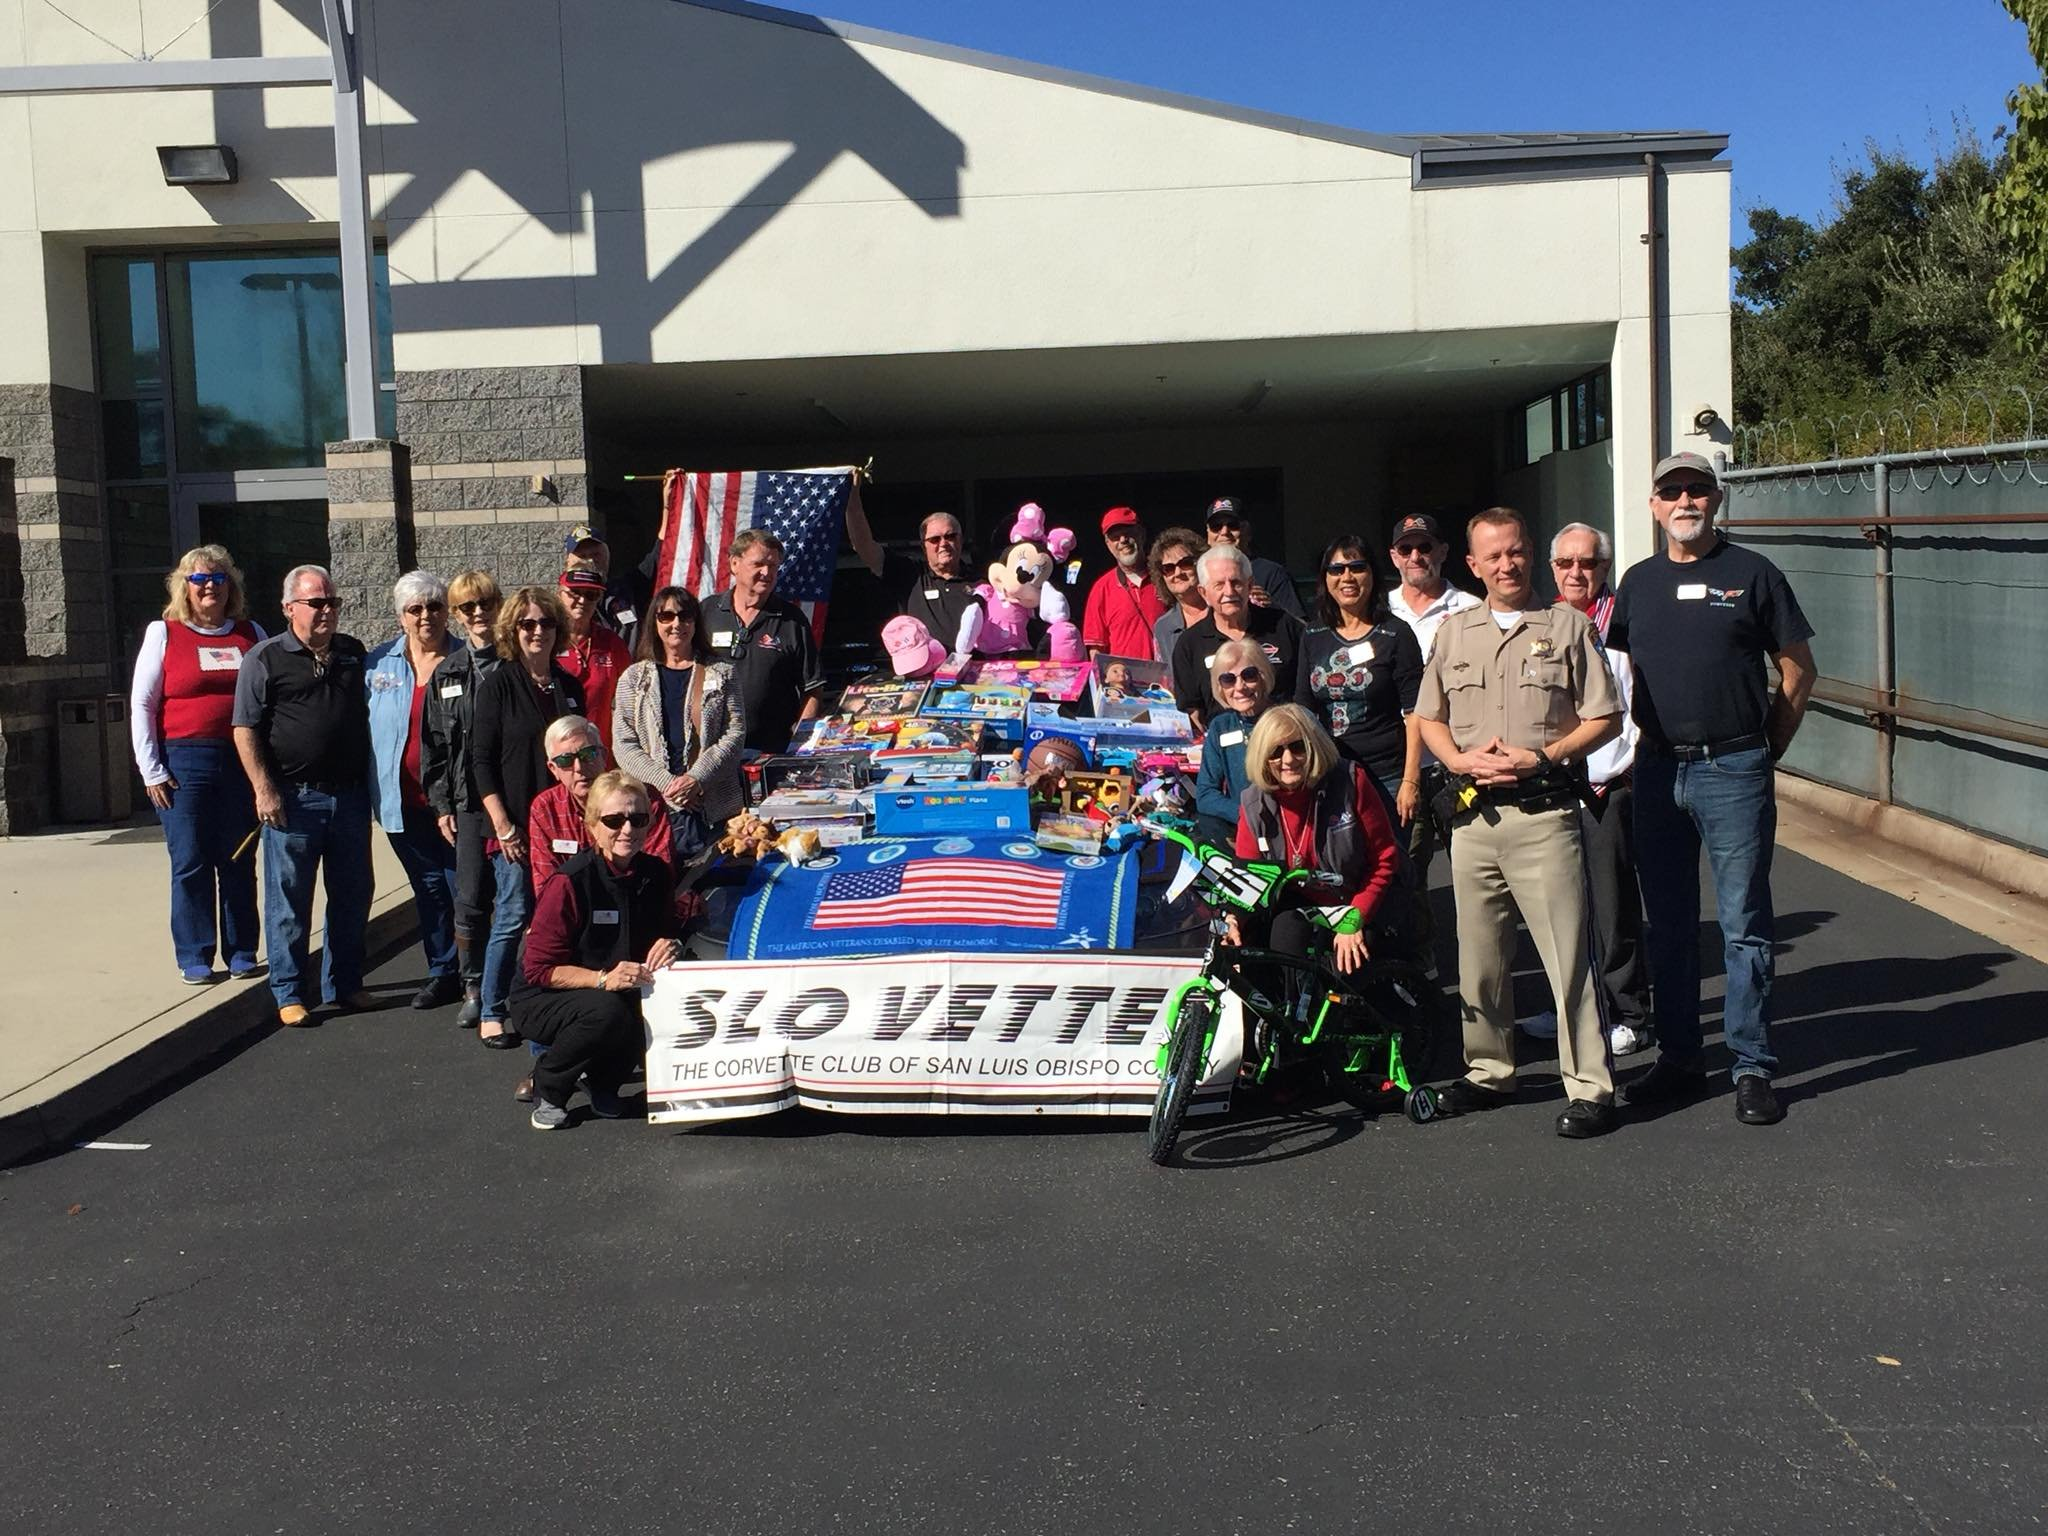 Toys were dropped off this weekend by the SLO Vettes corvette club of SLO County for the CHP's CHiPs for Kids toy drive. (Photo: SLO CHP)